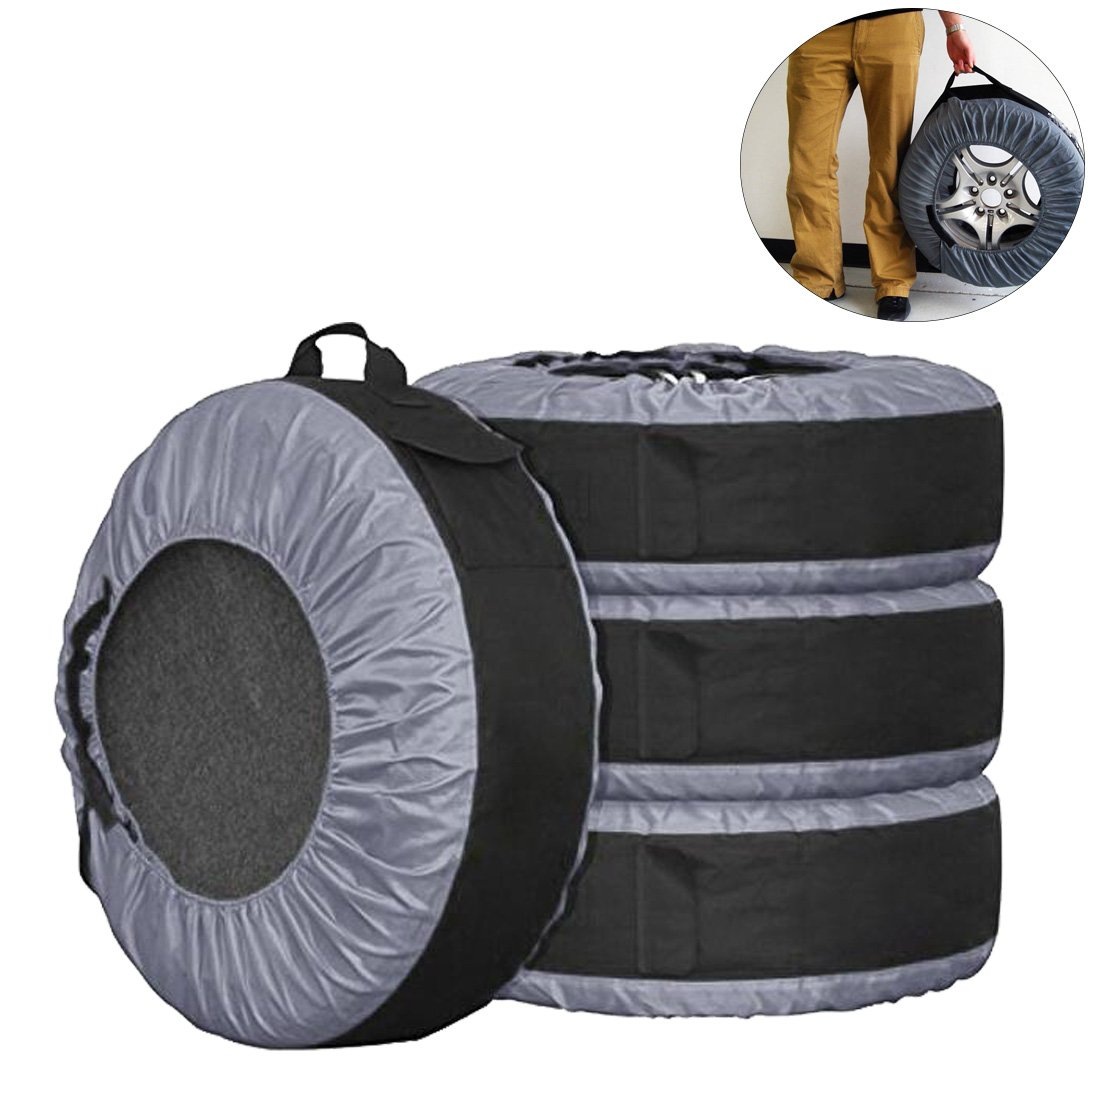 FLR Tire Tote Adjustable Waterproof Grey 30in Tire Covers Bags Seasonal Tire Storage Bag for Car Off Road Truck Tire Totes Set of 4 by FLR (Image #1)